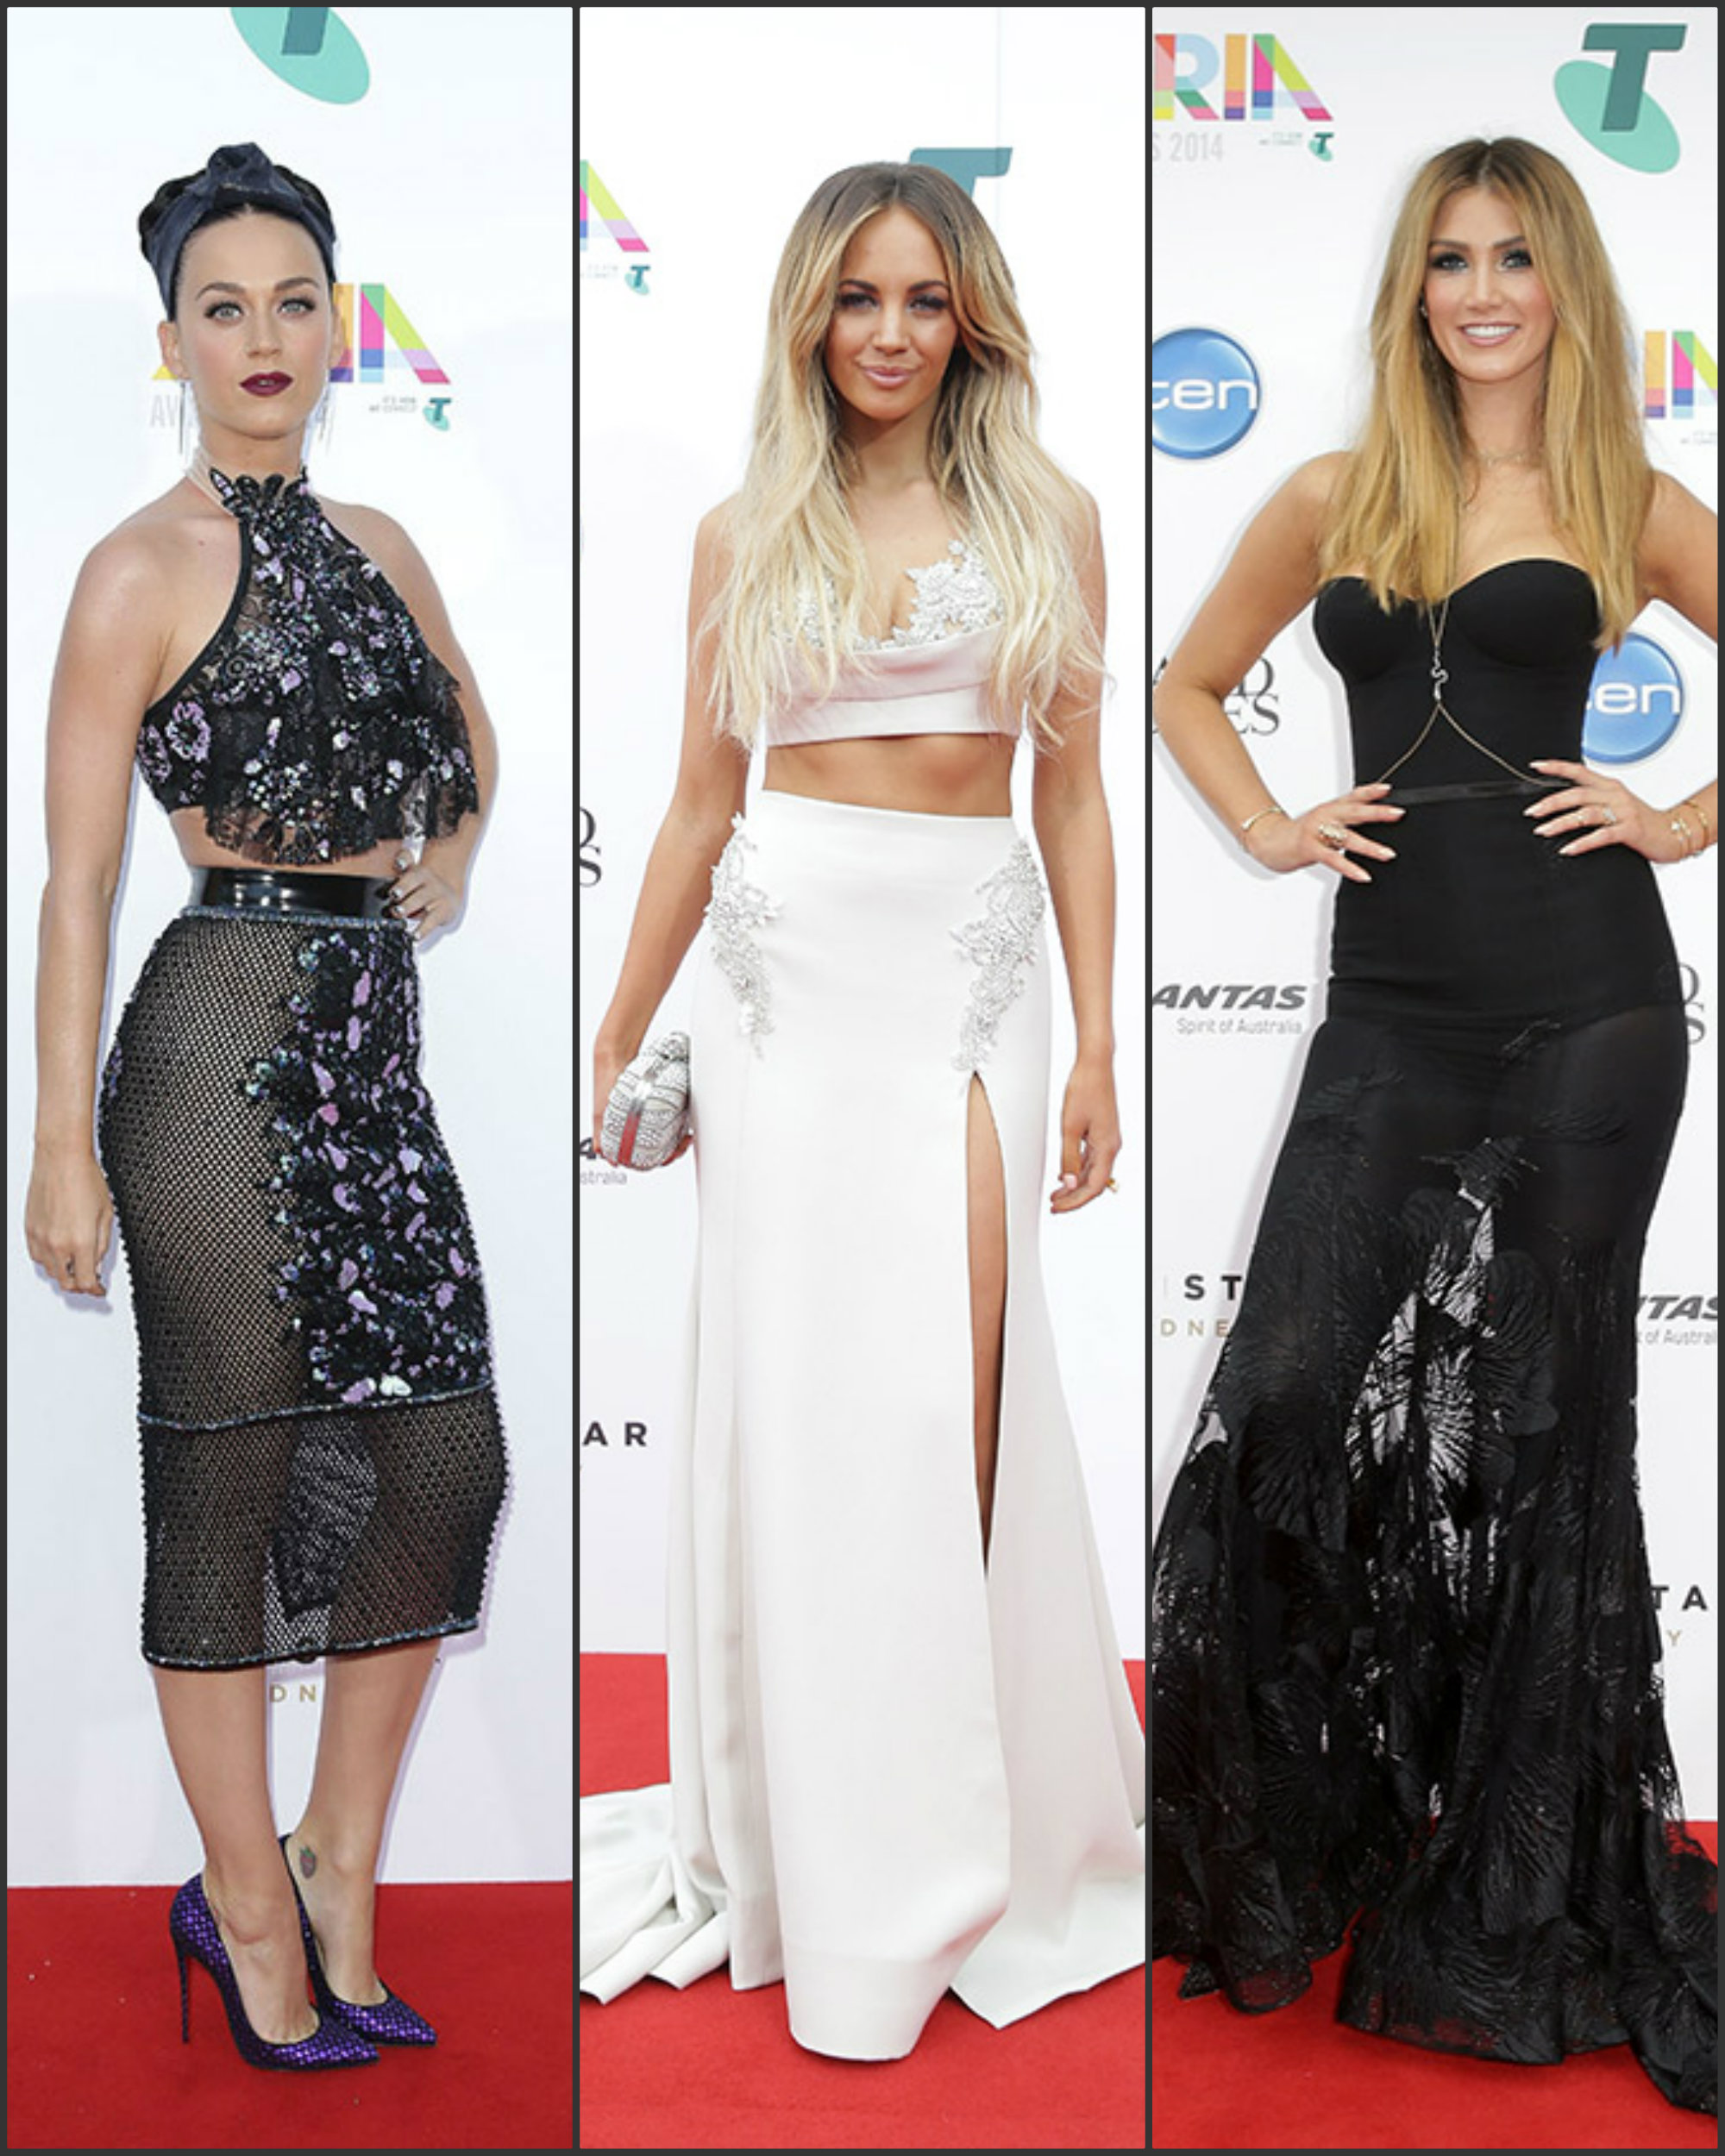 The 2014 Aria Awards Redcarpet Fashion Sizzle